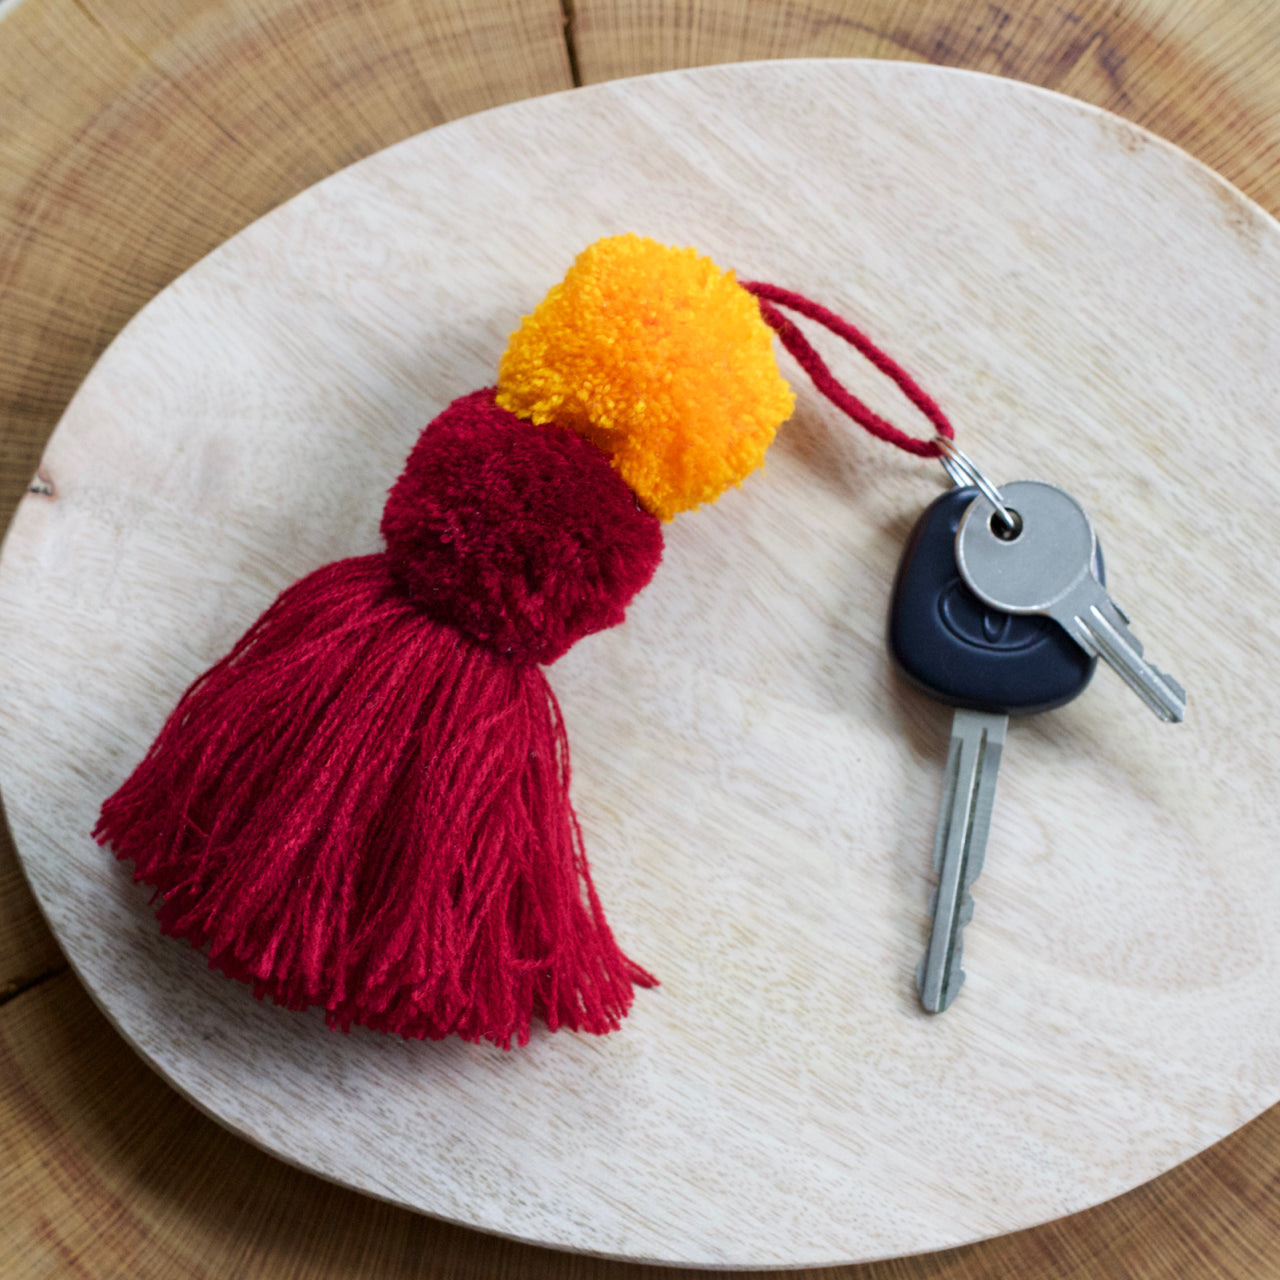 Pom Pom Key Ring 05  Key Ring Red & Orange - Cielo Collective handmade with tradition creativity and integrity